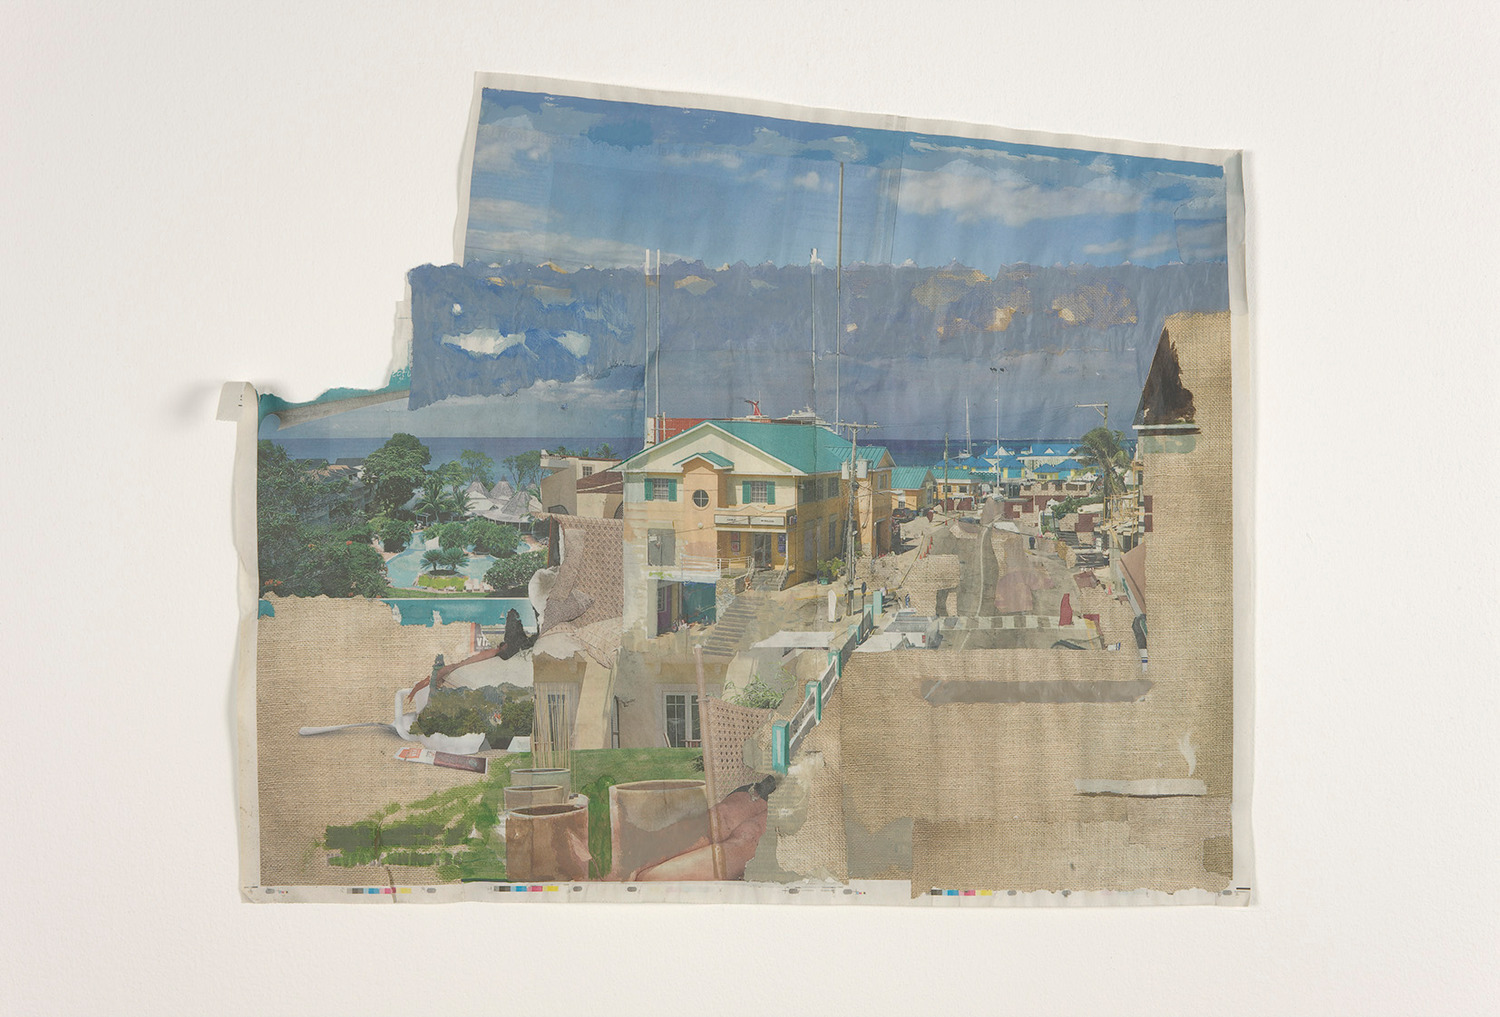 Tony Swain, As universal as revenue, 2012, Acrylic on pieced newspaper, 59.5 x 71.5 cm